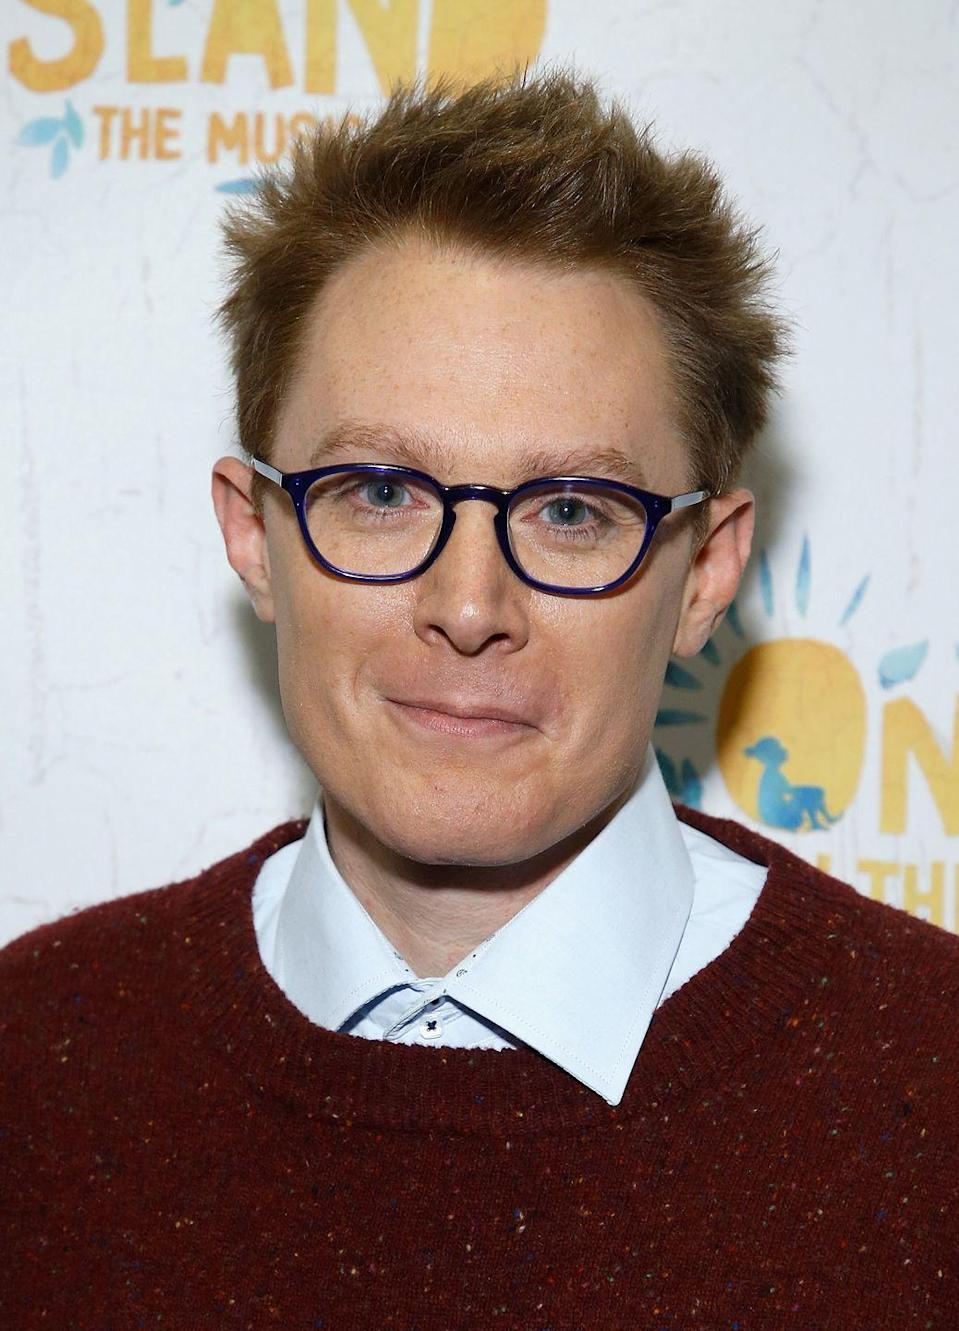 <p>Clay Aiken first rose to fame on season 2 of <em>American Idol</em>. In 2014, the singer ran for Congress as a Democratic representative in the 2nd Congressional District of North Carolina. Although he did not win the election, he's continued his political activism since.</p>